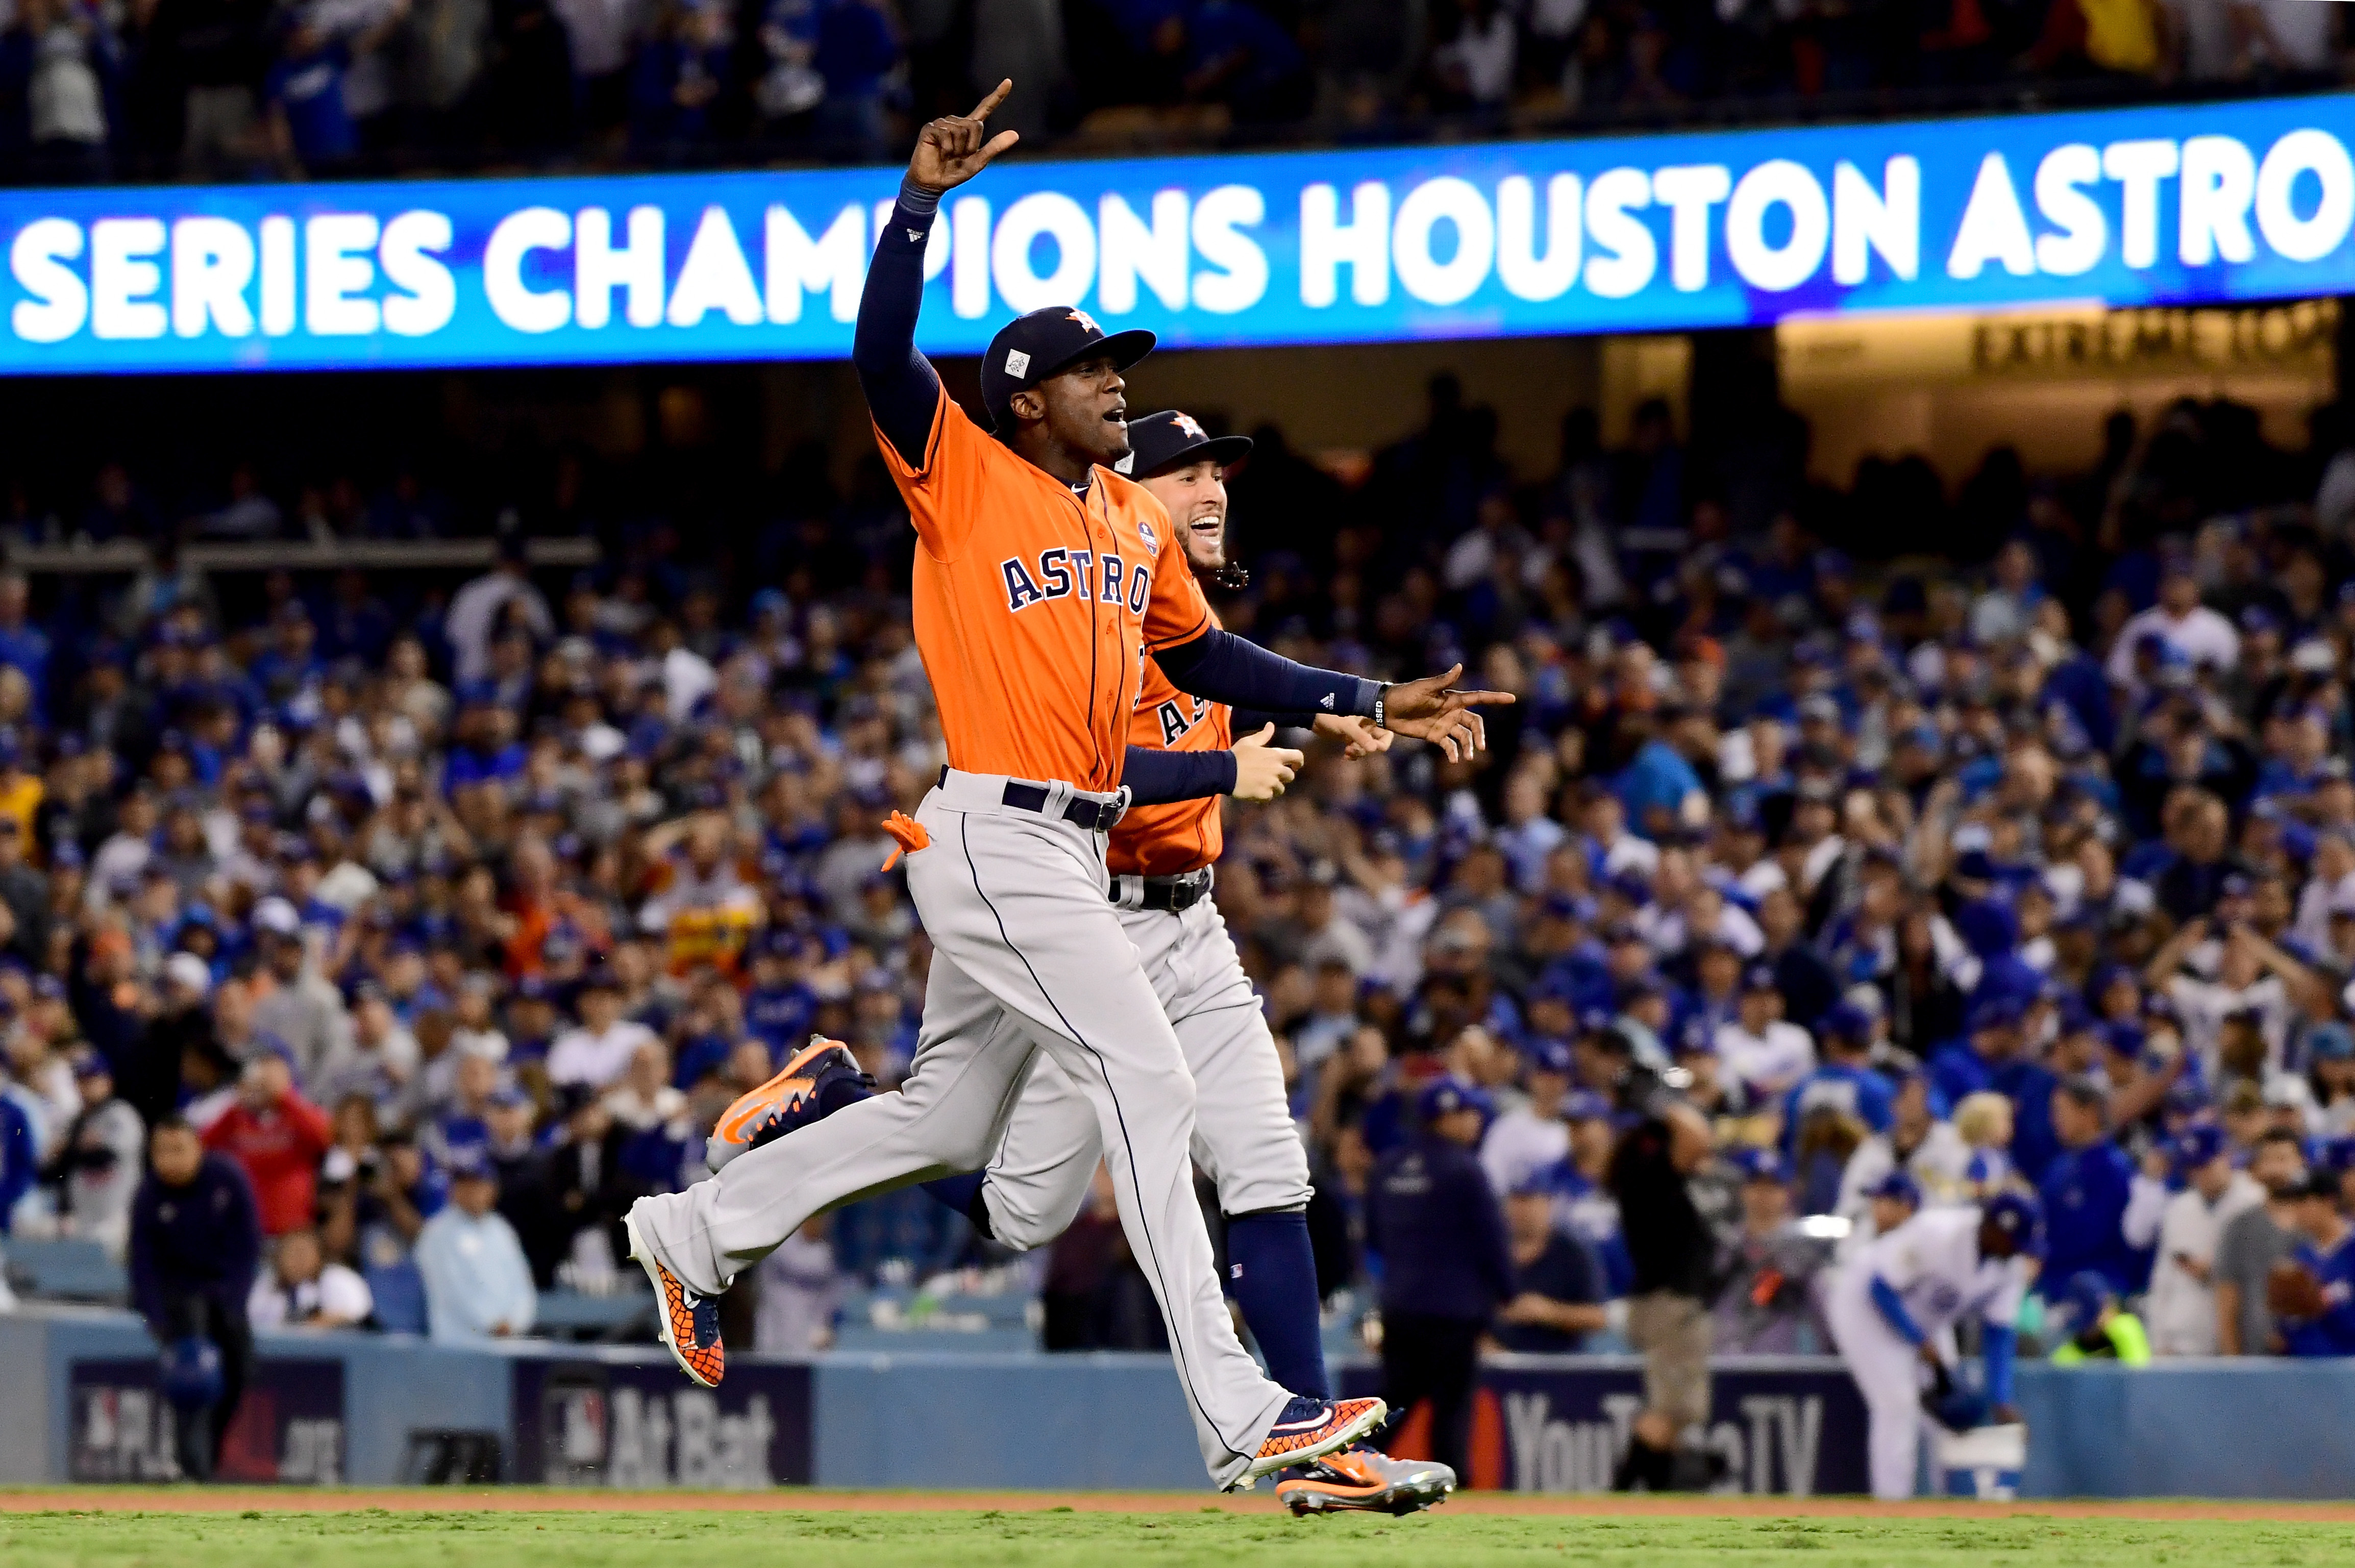 Cameron Maybin and George Springer of the Houston Astros celebrate after winning the team's first World Series title.